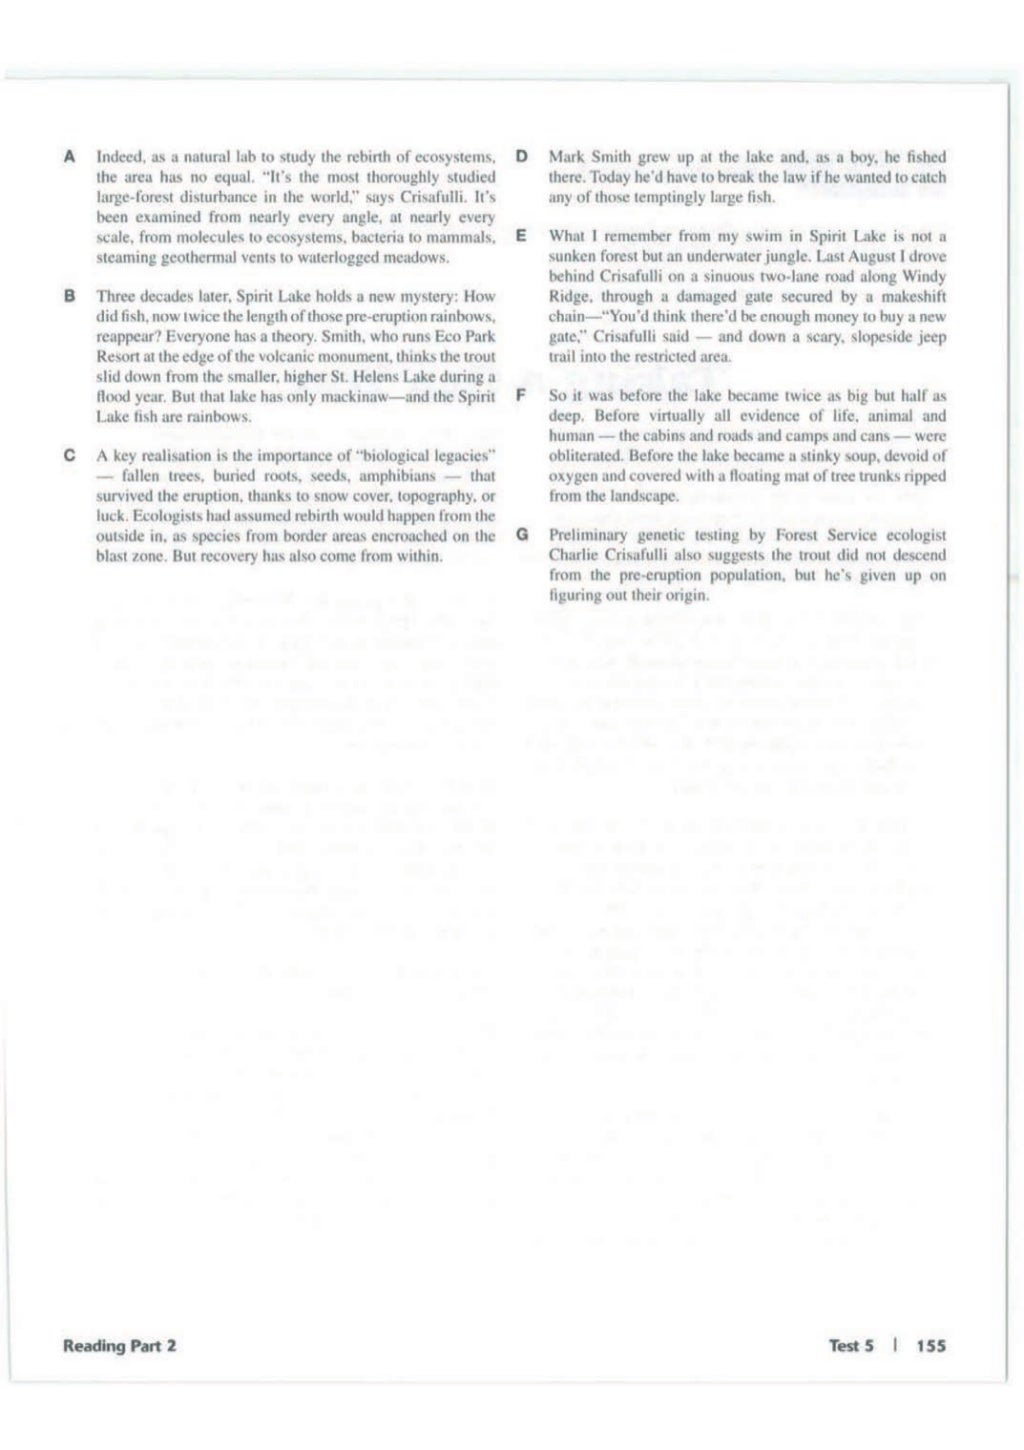 Advanced trainer 6 practice tests with answers book4joy (1) page 156